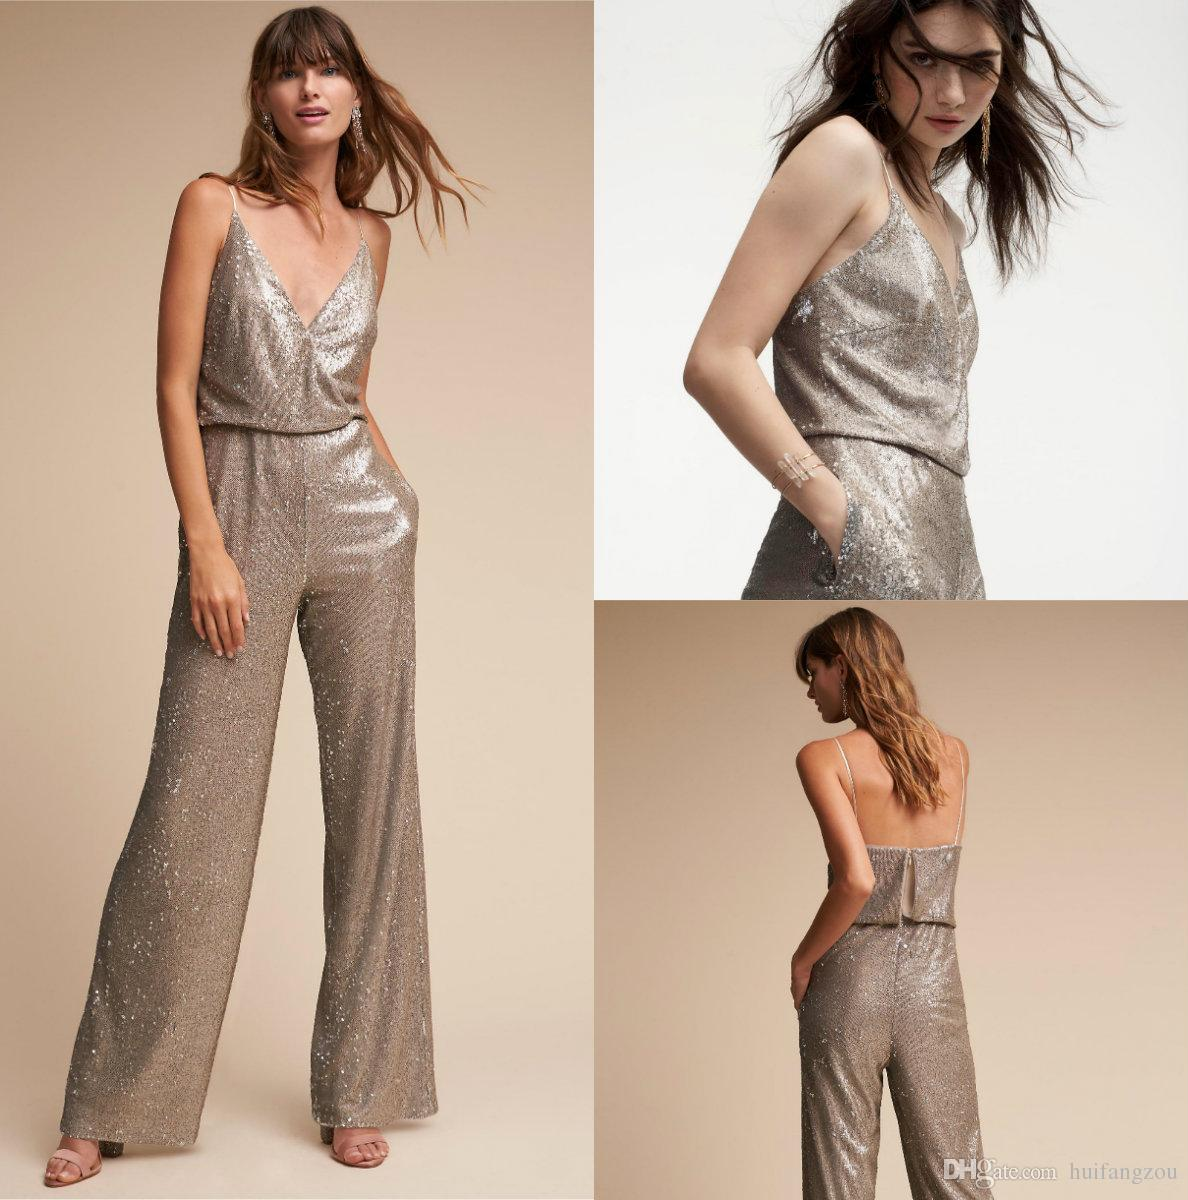 7d754c39fd1f New Fashion BHLDN Shiny Jumpsuit Cheap For Women Formal Occasion Grey  Sequined Sparkling Spaghetti V Neck Custom Made Outfit Bridal Shops  Weddings From ...